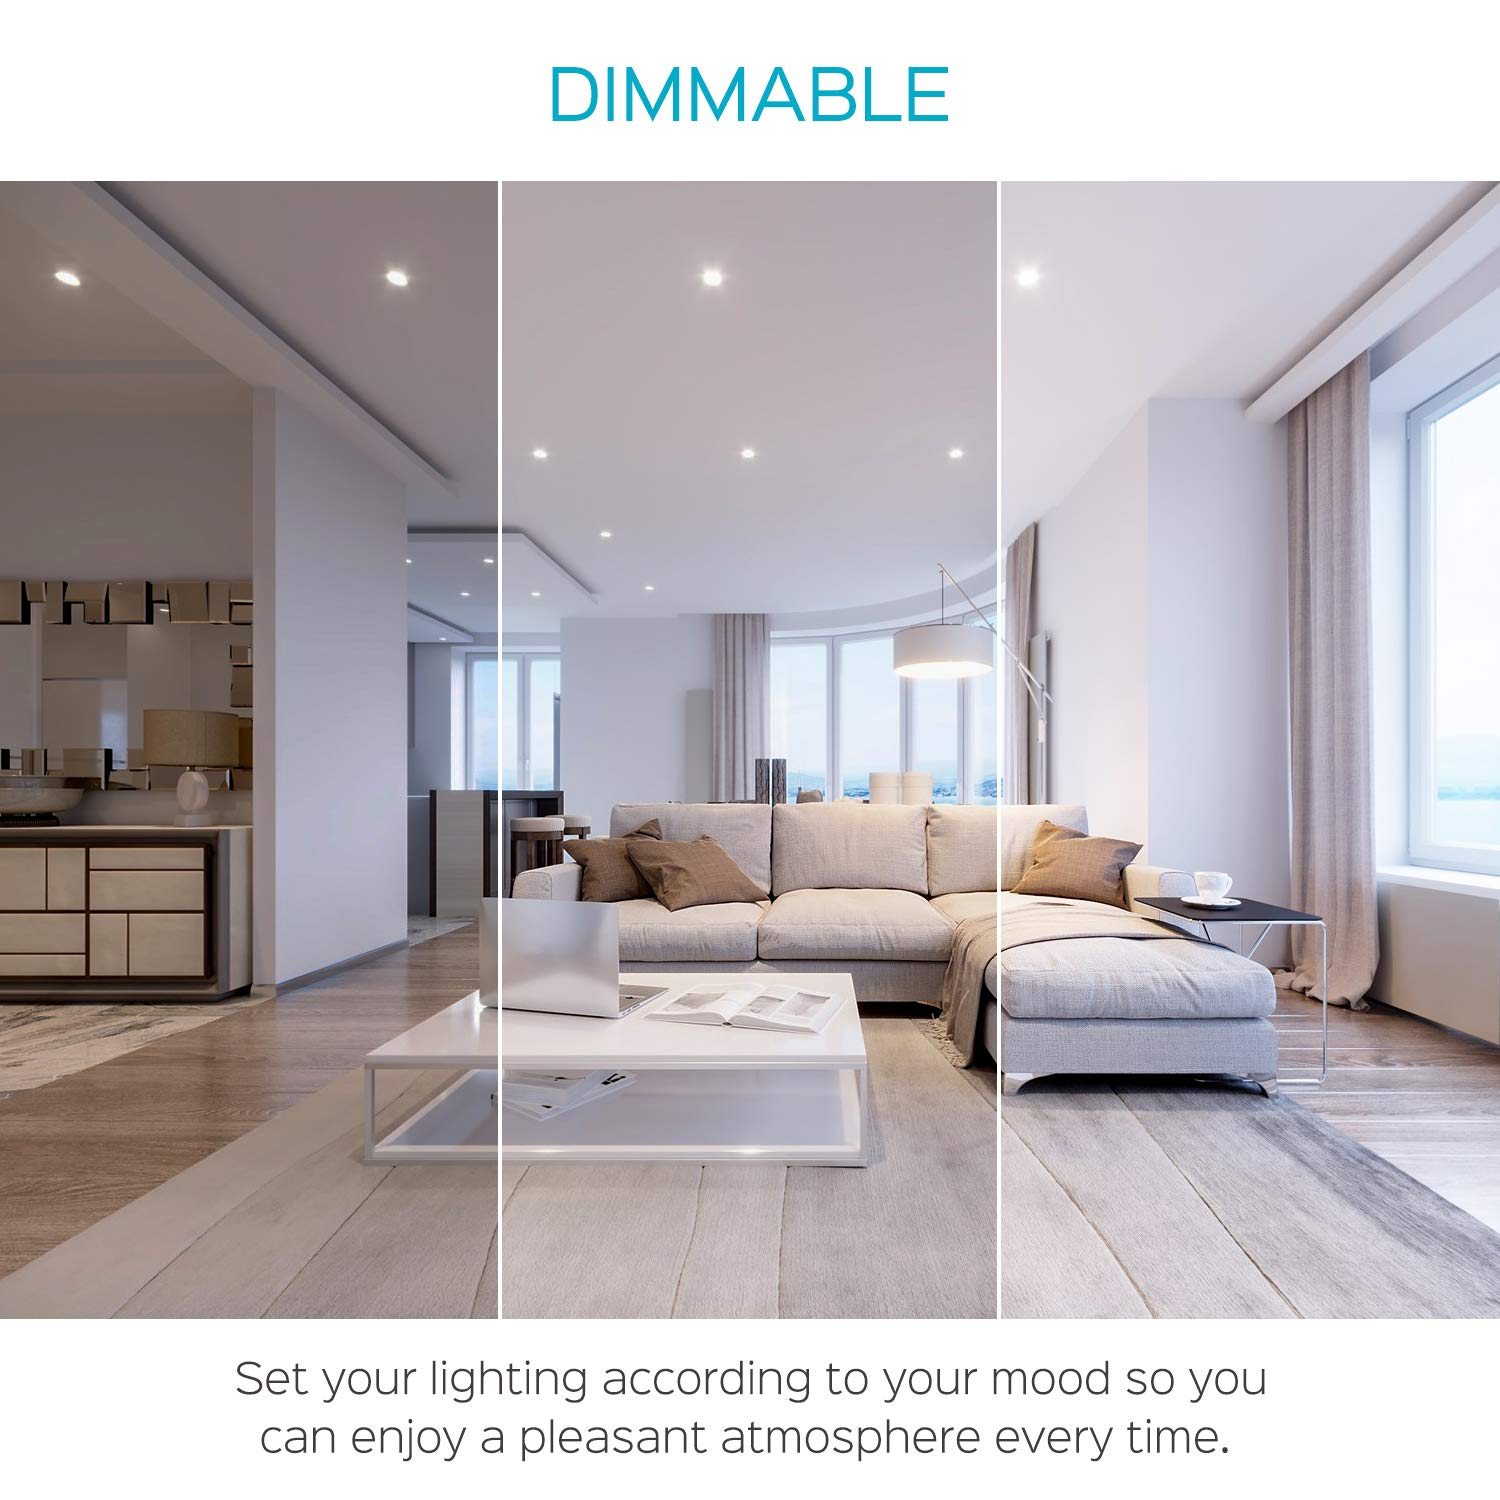 450 Lumens Damp Rated /& ETL Listed Slim Recessed Ceiling Light 7W 4-Pack IC Rated Airtight 5000K Bright White Dimmable Luxrite 3 Inch Square Ultra Thin LED Recessed Light with Junction Box